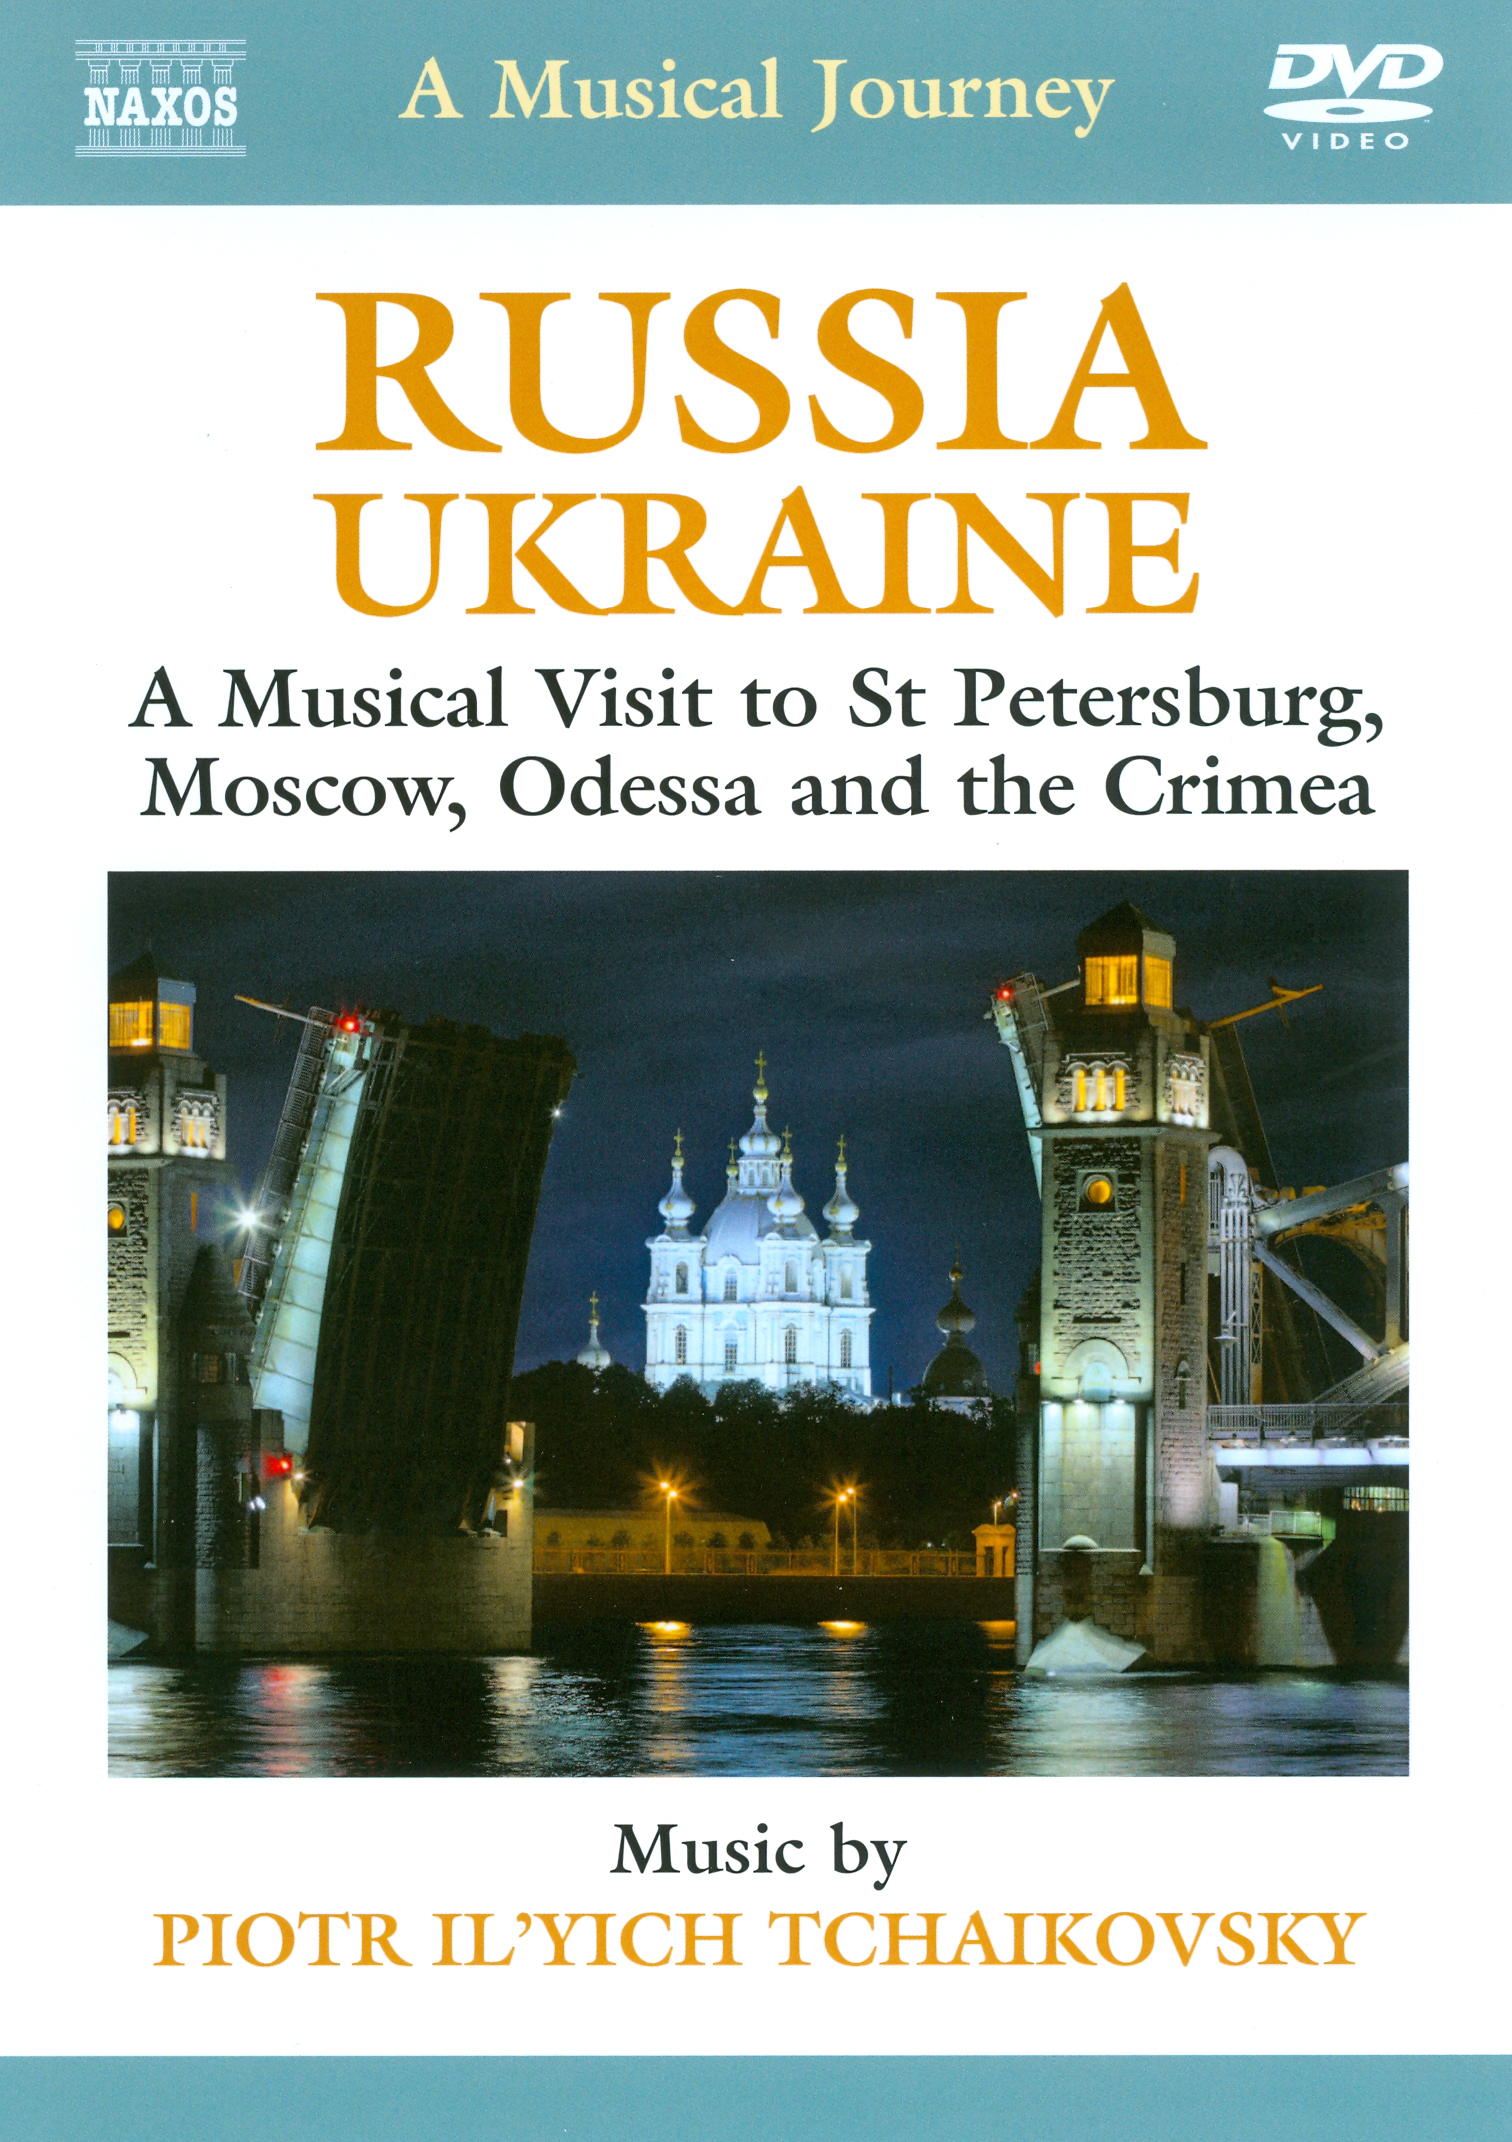 A Musical Journey: Russia/Ukraine - A Musical Visit to St. Petersburg, Moscow, Odessa and the Crimea